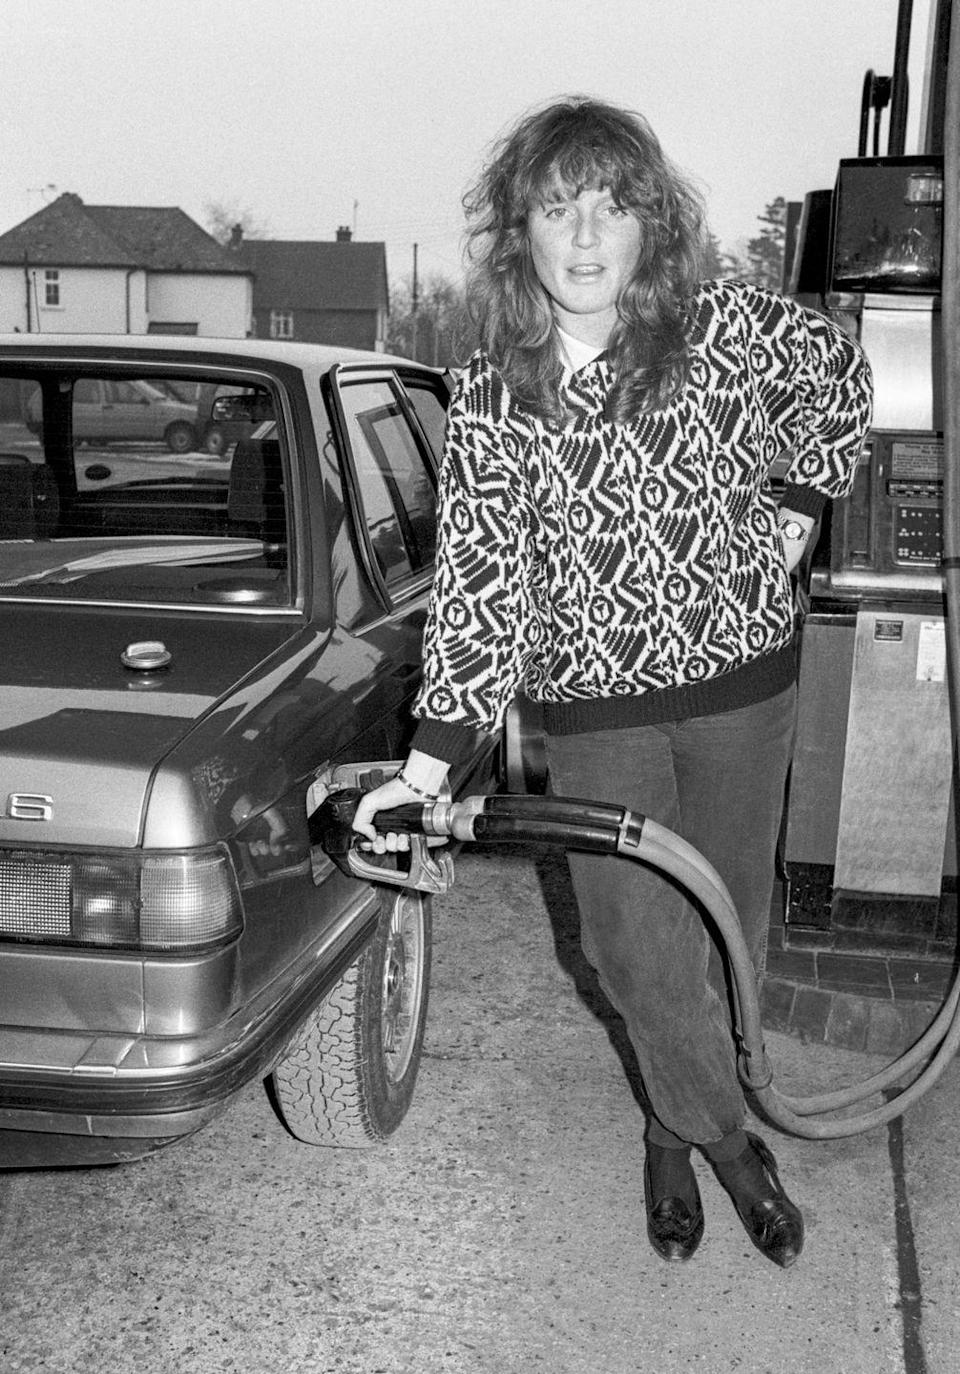 <p>Even on the brink of marrying into the royal family, Sarah Ferguson remained true to her roots, and that meant filling her own tank with fuel. The soon-to-be royal was spotted in Hampshire, England at a roadside gas station in 1986.</p>